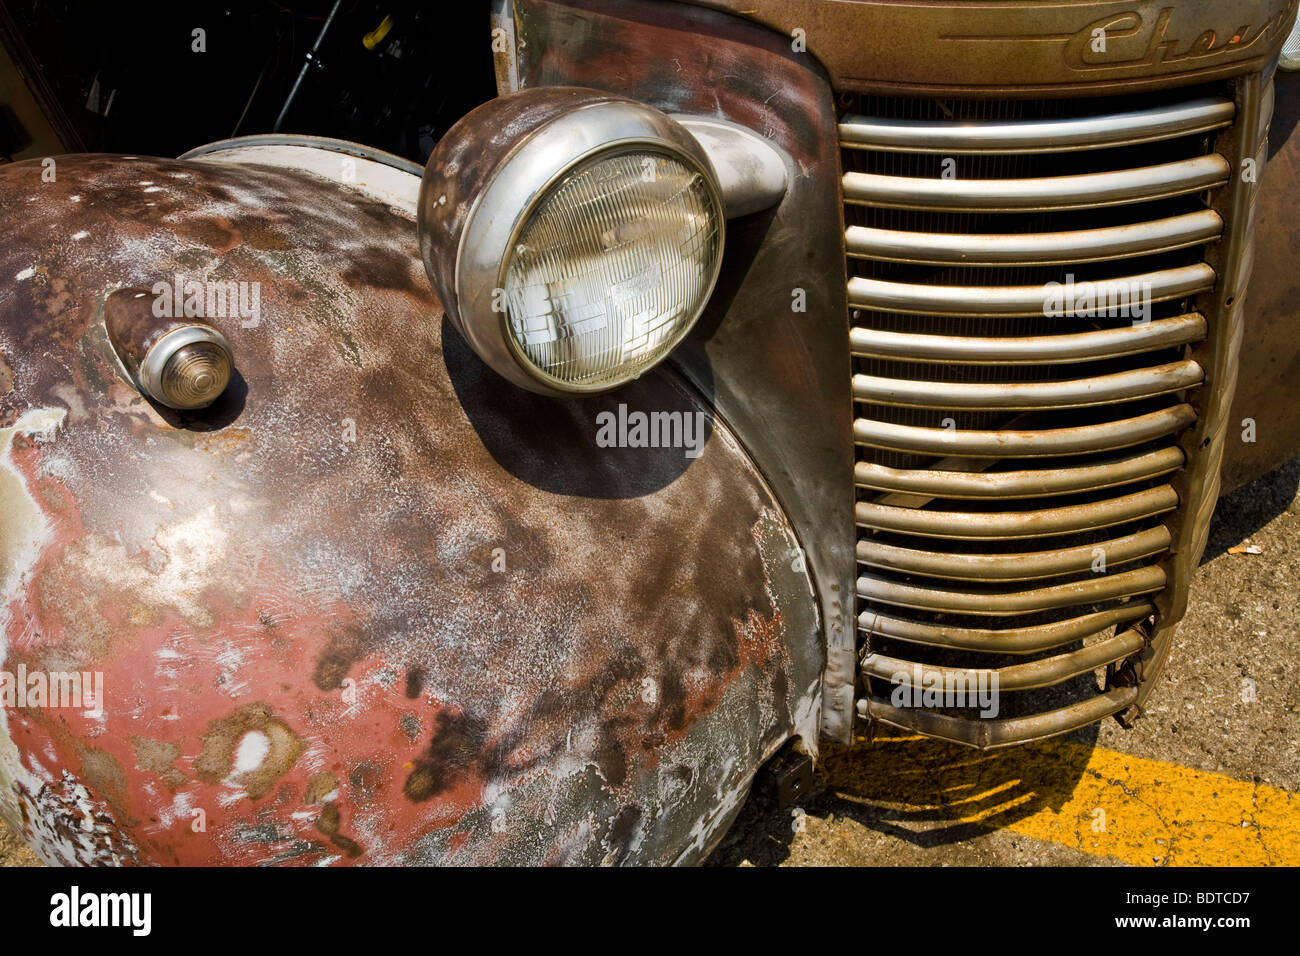 Old car, Pomona Swap Meet for the antique auto enthusiast - Stock Image